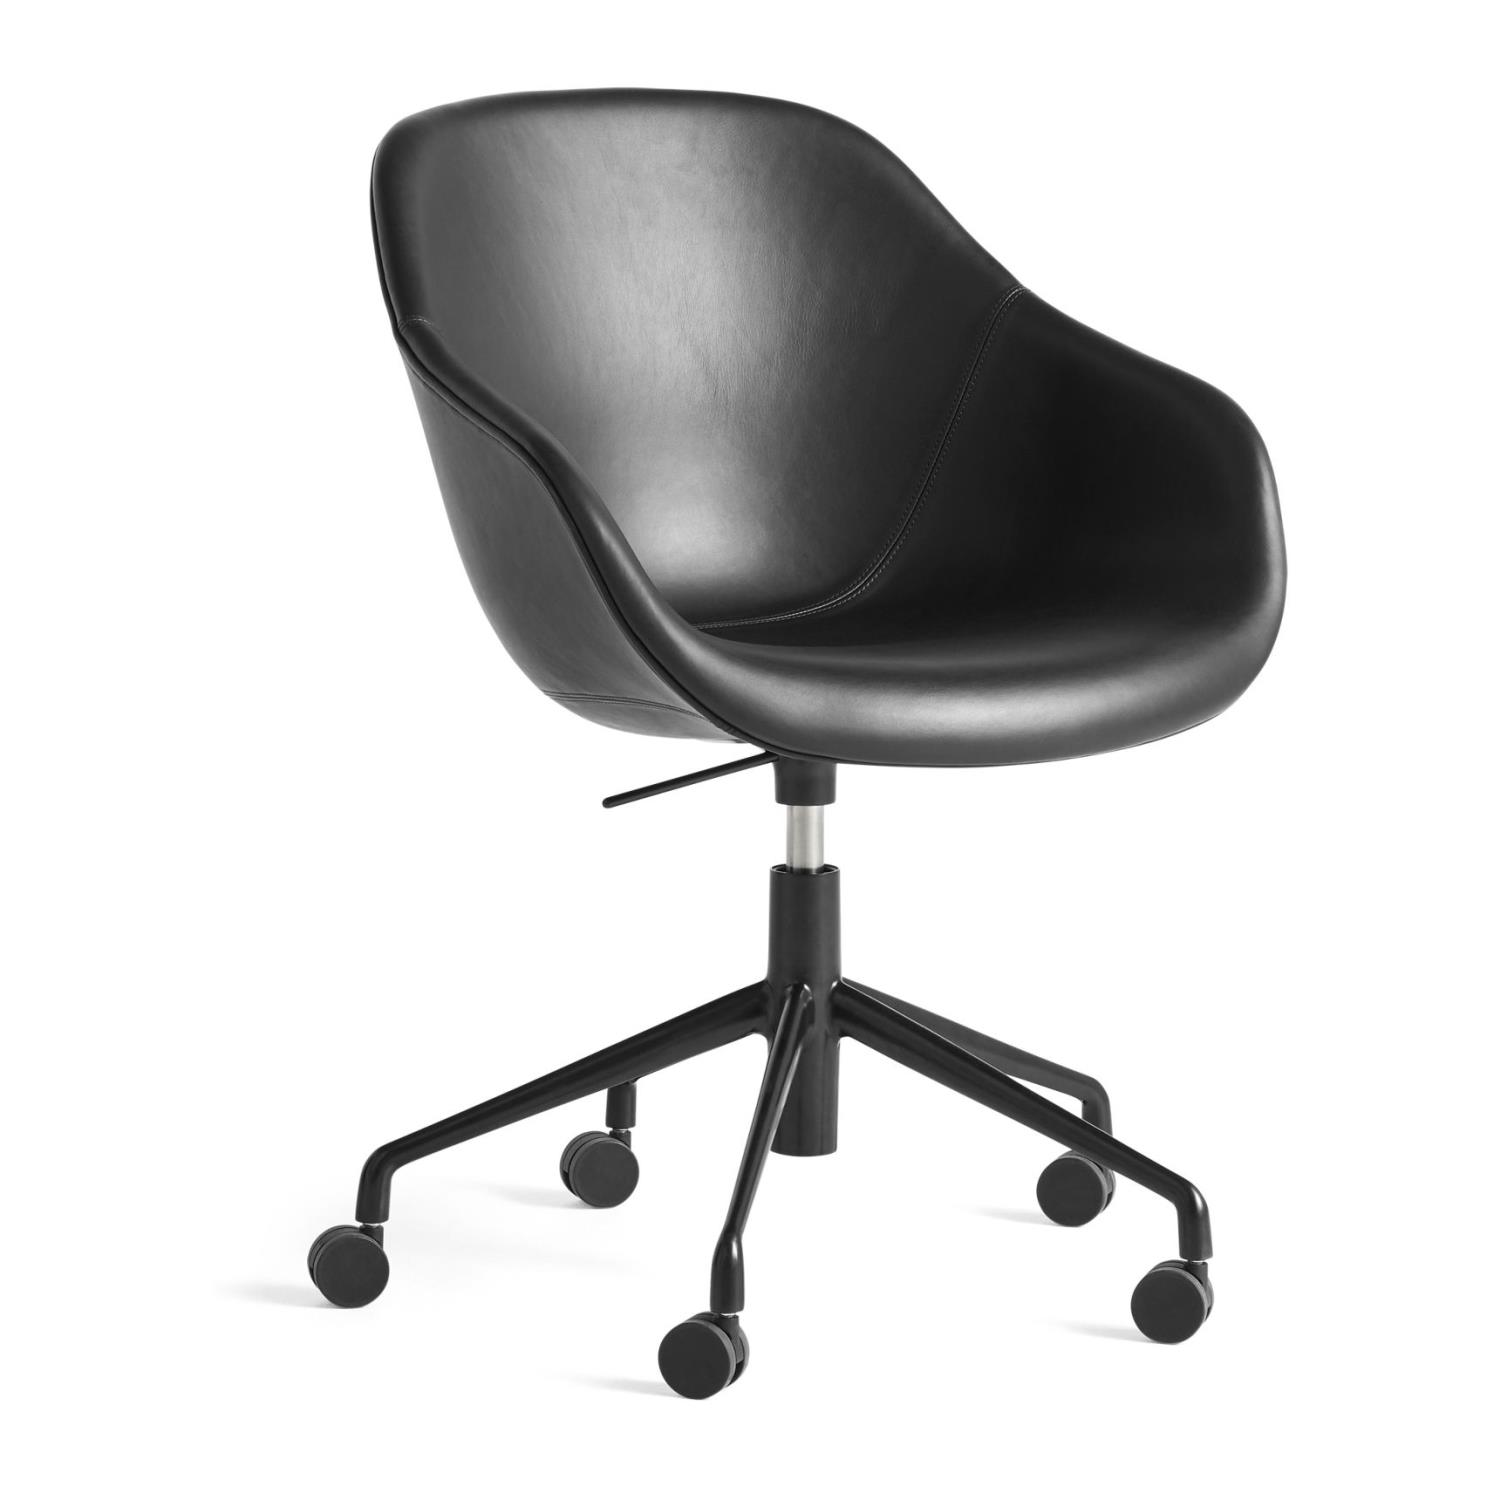 AAC 153 | About A Chair | Swivel Base